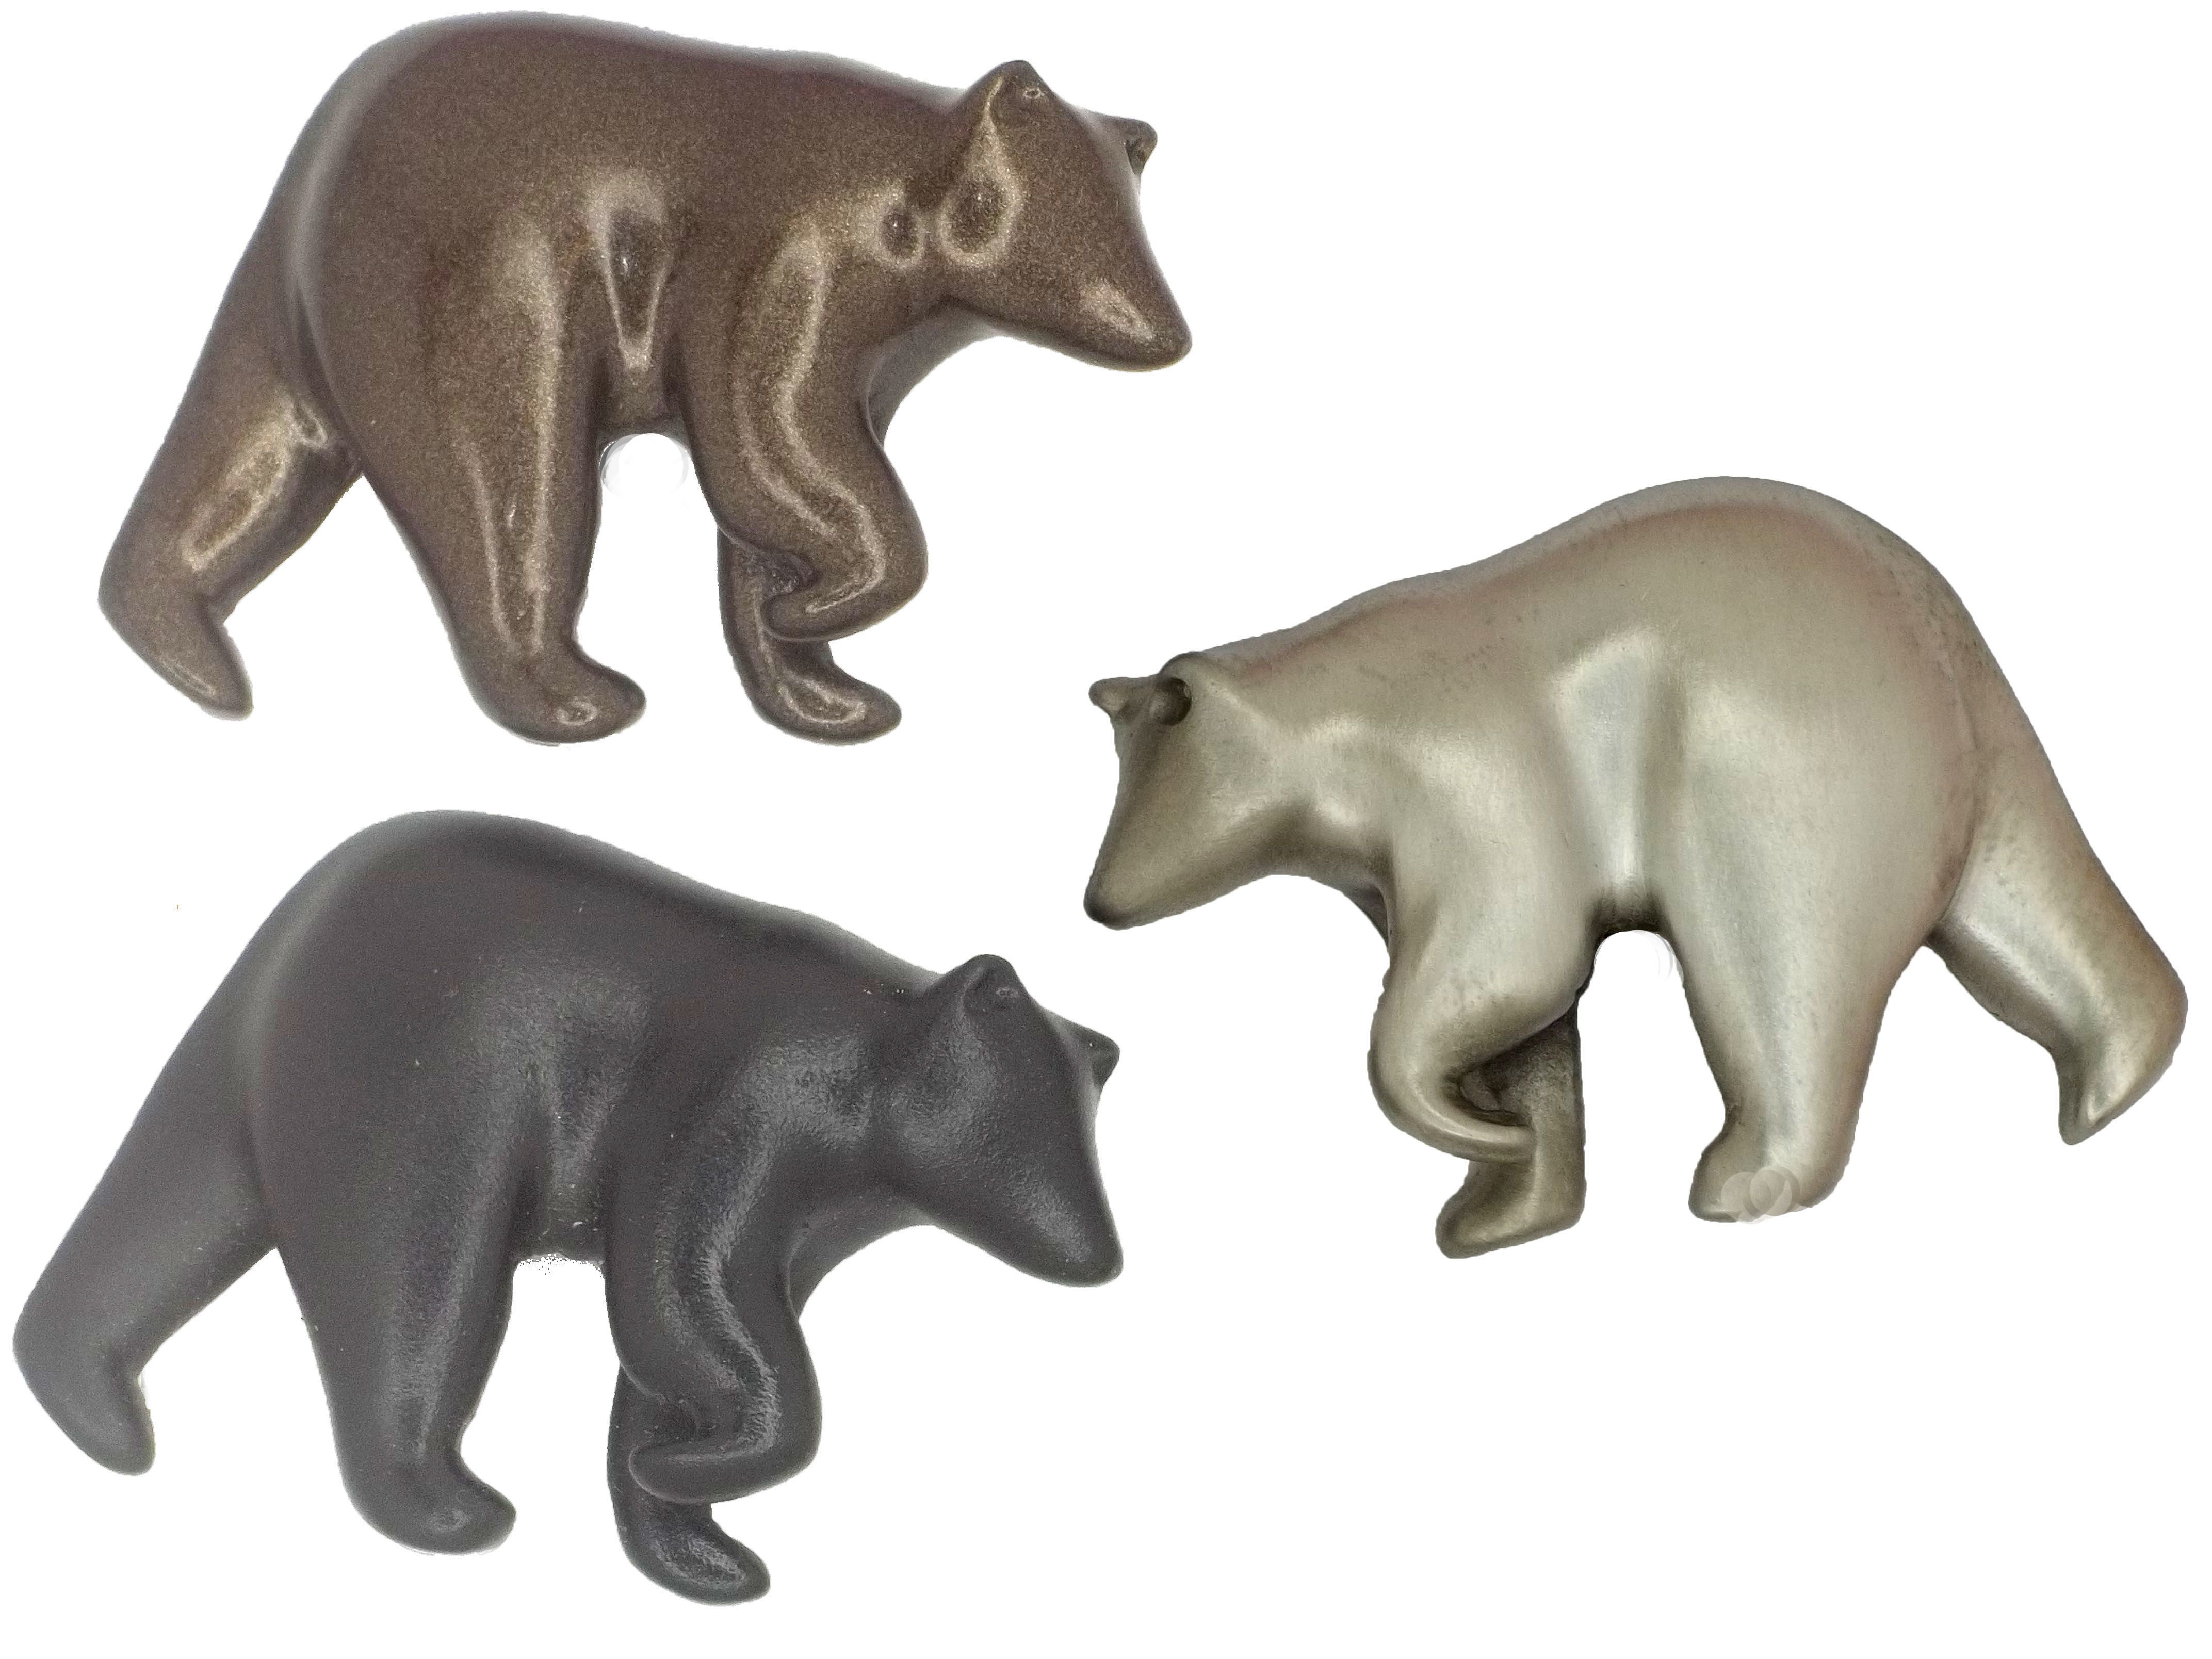 Bear Cabinet Knobs Cast In Fine Pewter. Finished In Brushed Nickel, Chrome  Or Custom Powder Coat Colors. From The Sea Life Cabinet Knobs Collection Of  Over ...